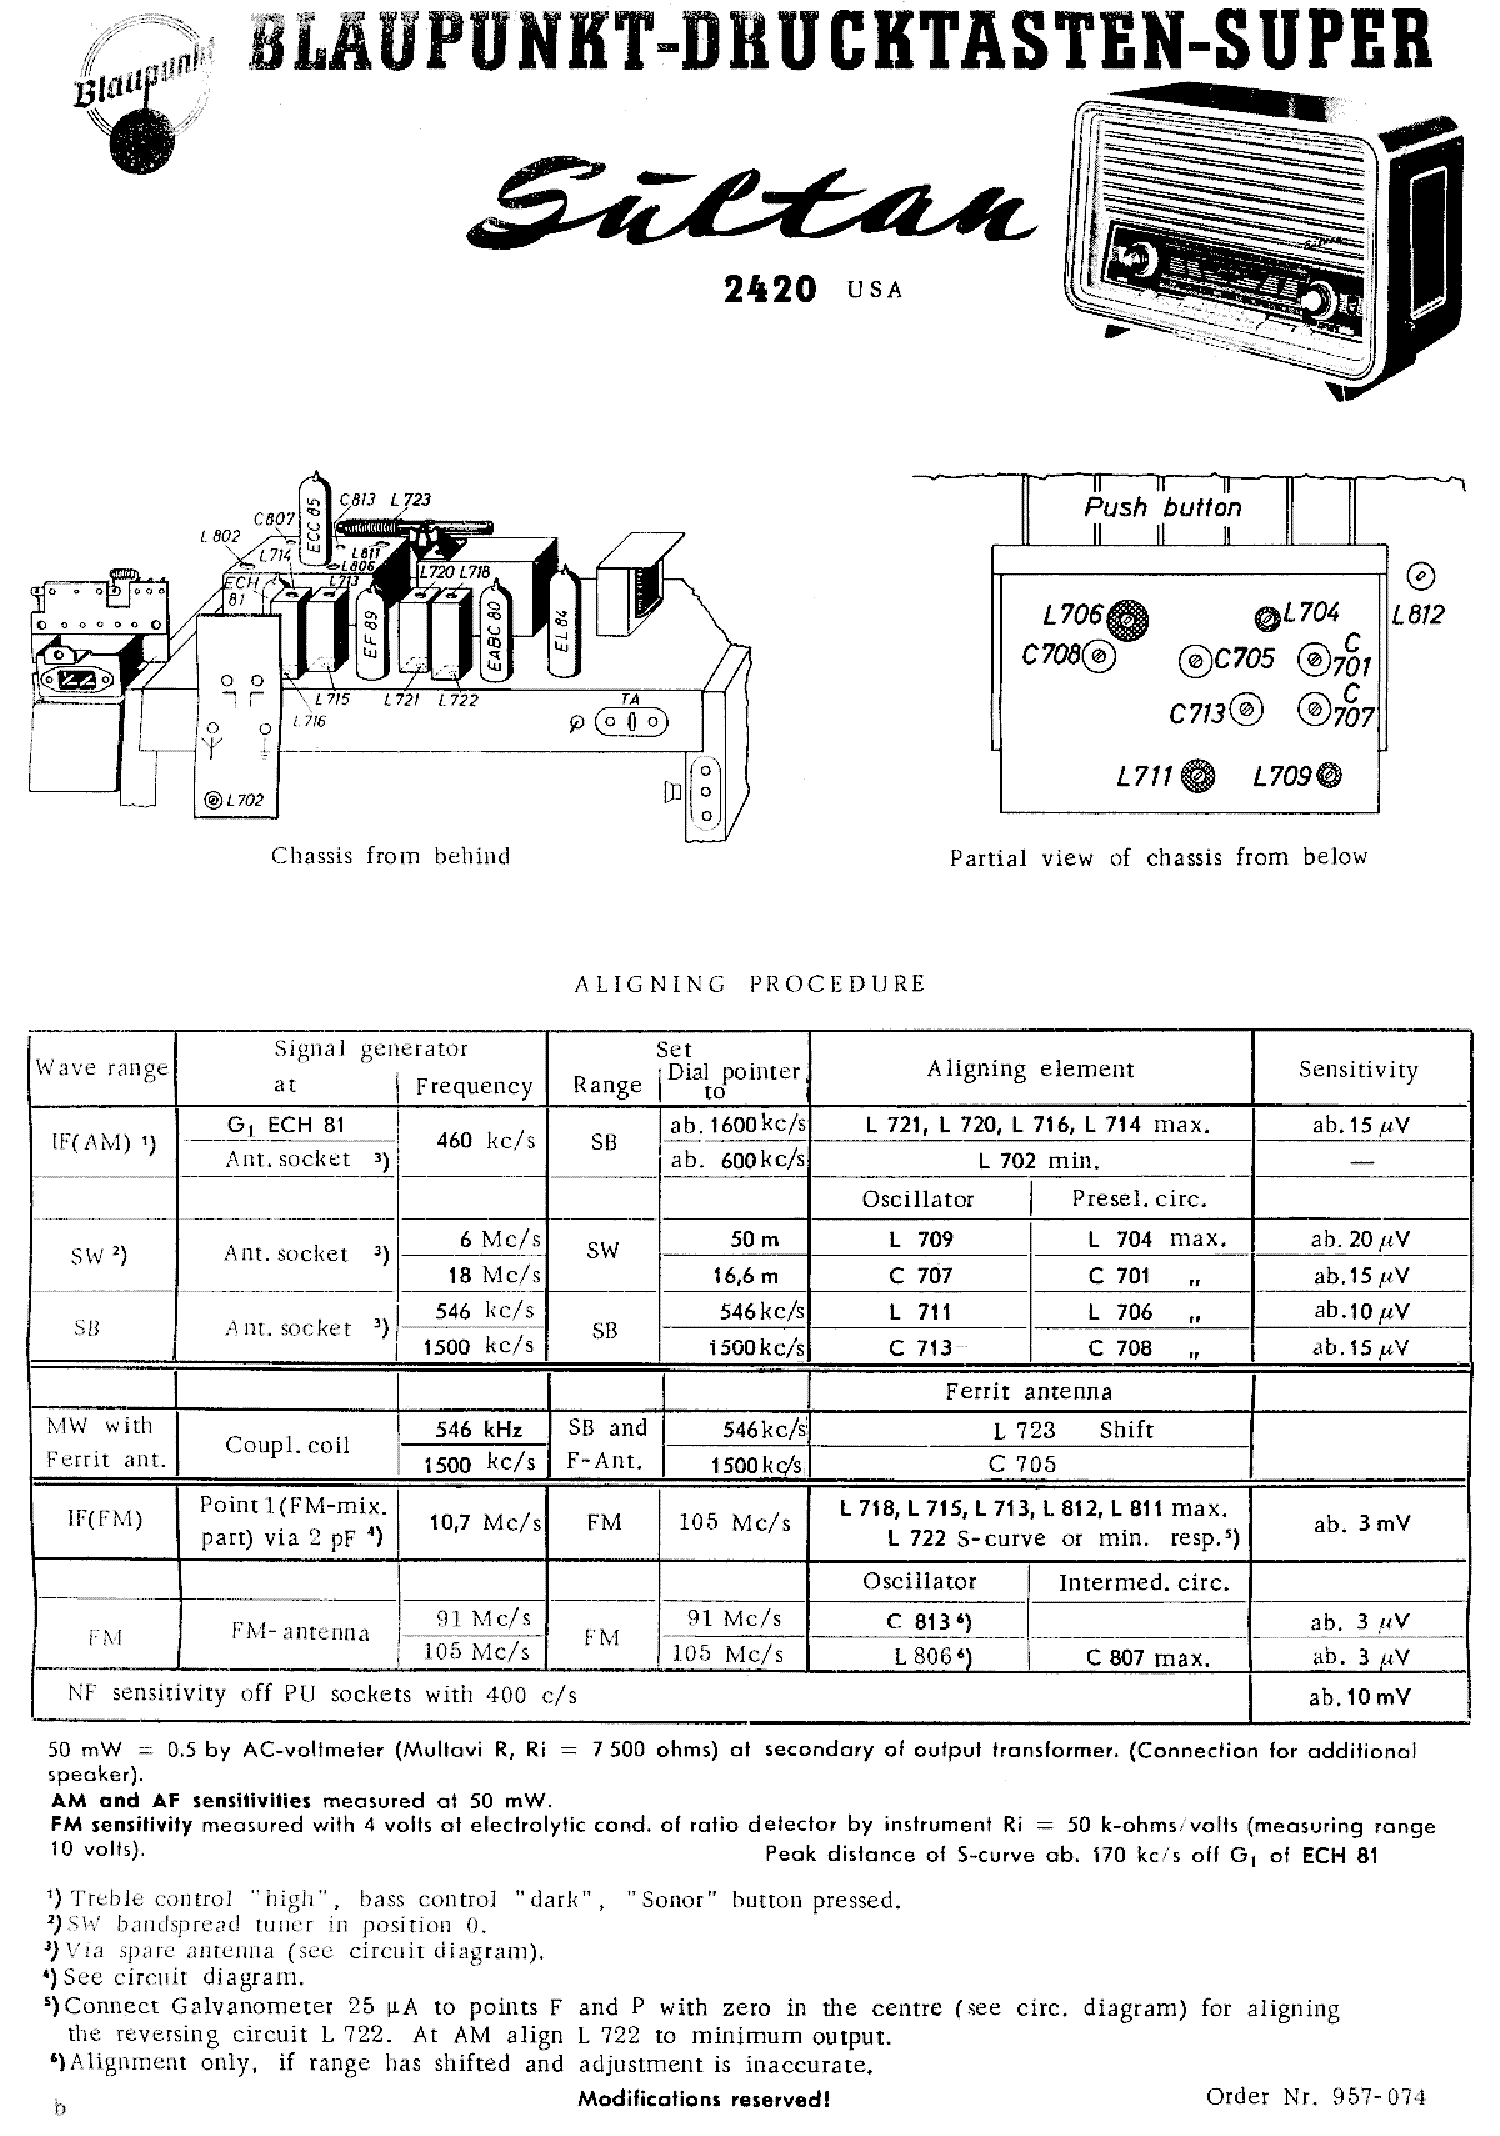 [Download] blaupunkt rcr42 service manual free Full PDF